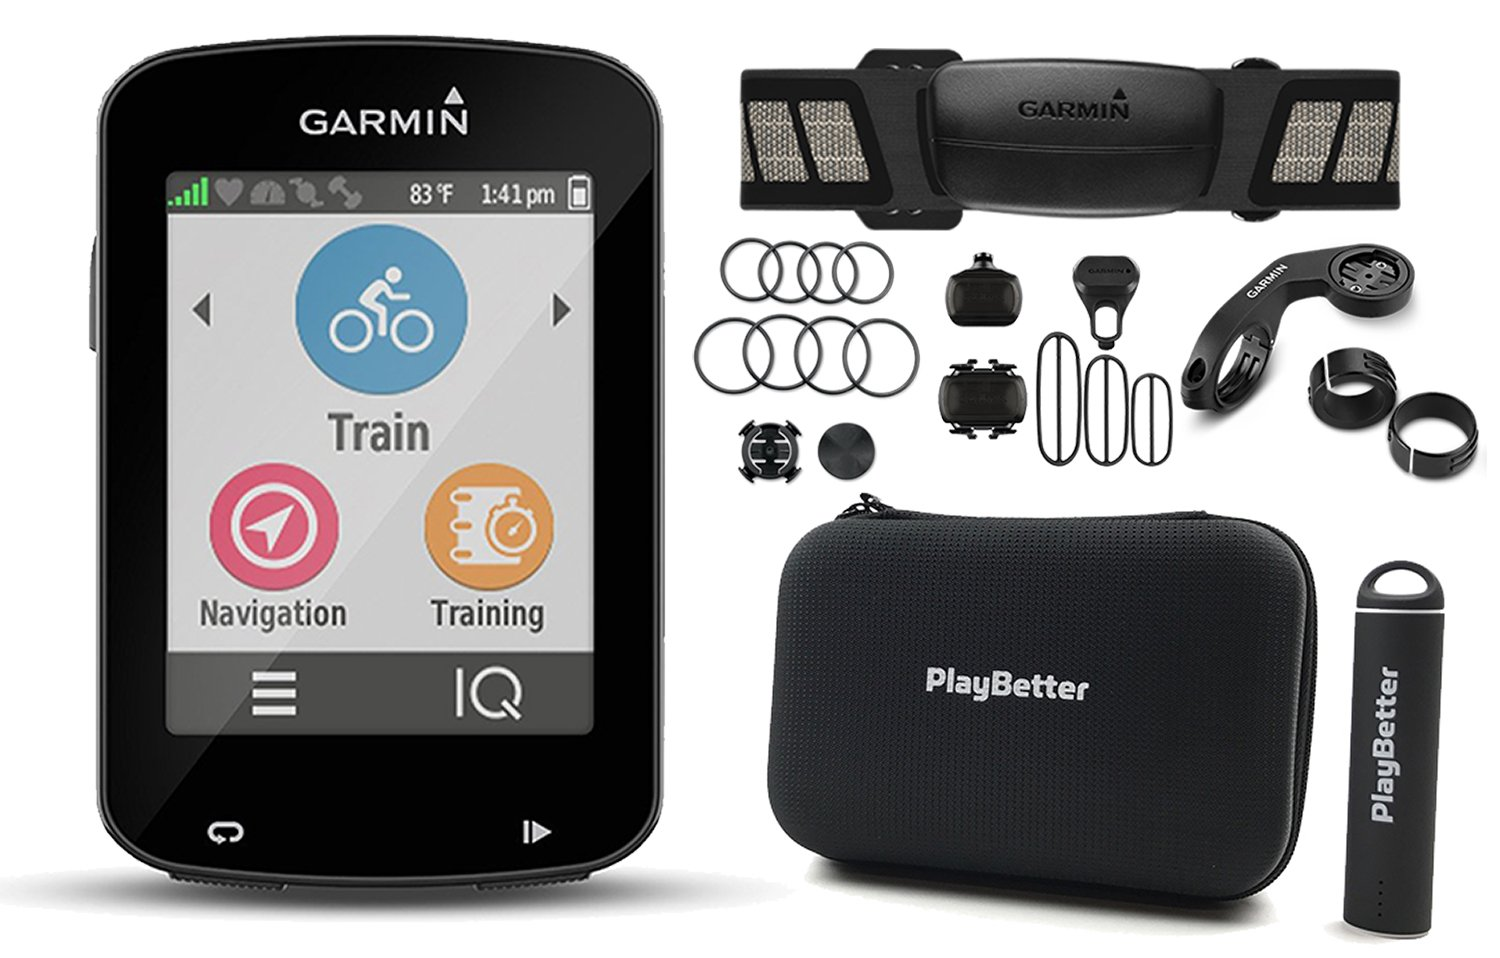 Garmin Edge 820 CYCLE BUNDLE with Garmin Chest Strap HRM, Cadence & Speed Sensors, PlayBetter Portable USB Charger & Hard Carrying Case, Bike Mounts, USB Cable | Touchscreen Display, GPS Bike Computer